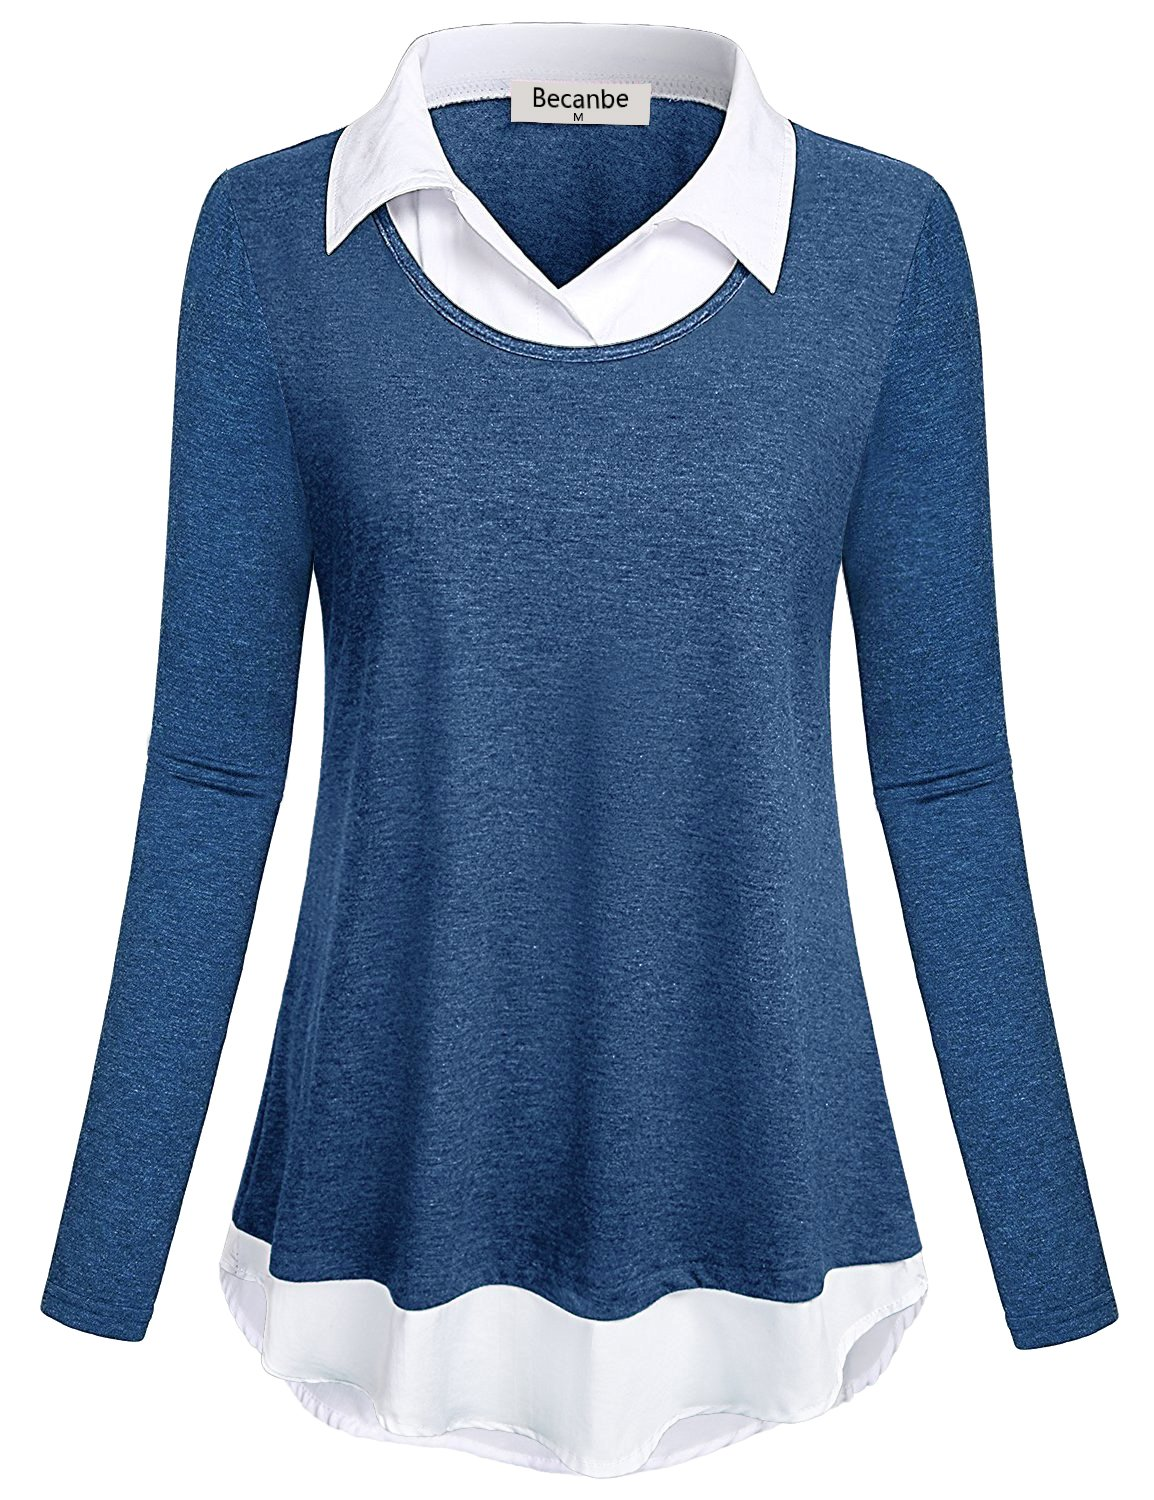 Becanbe Stylish Shirts for Women,Long Sleeve Loose Fit V CollaBlue Neck Patchwork Details Modern Tops Relaxed Fit Outstanding Chic Flattering Cotton Knitted Blouses for Ladies(Blue,X-Large)